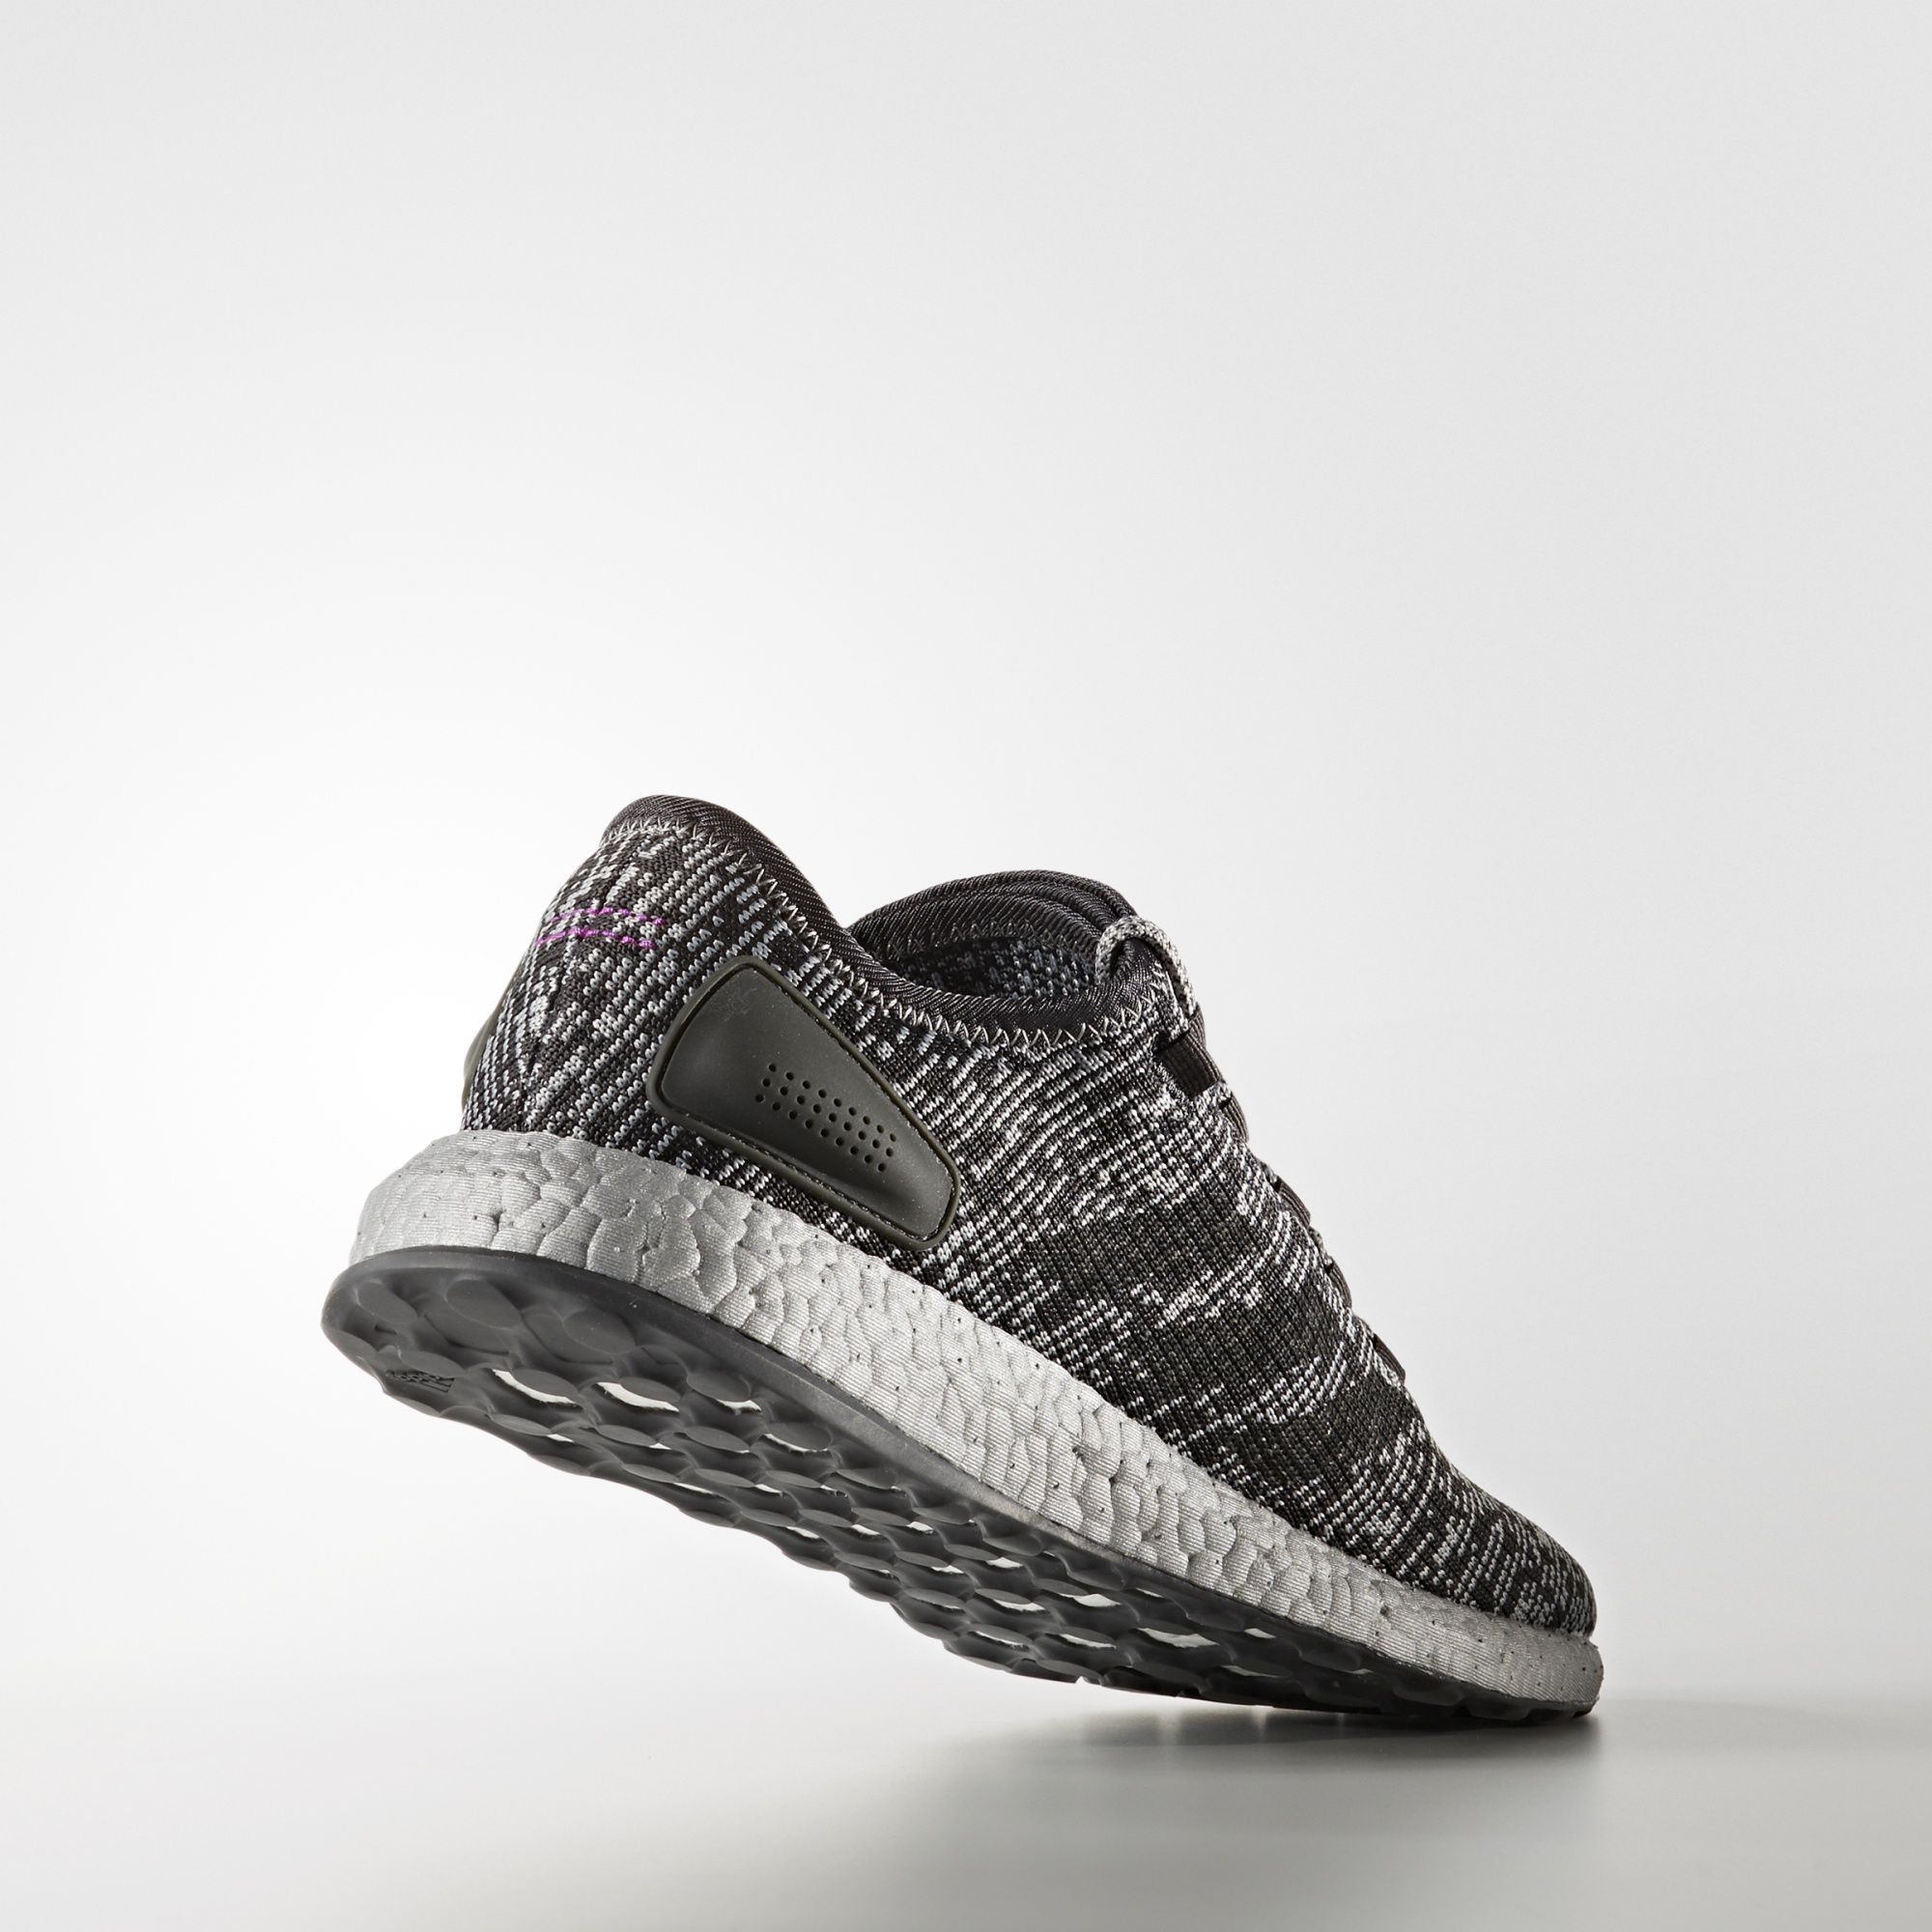 adidas Pure Boost LTD Silver S80701 3